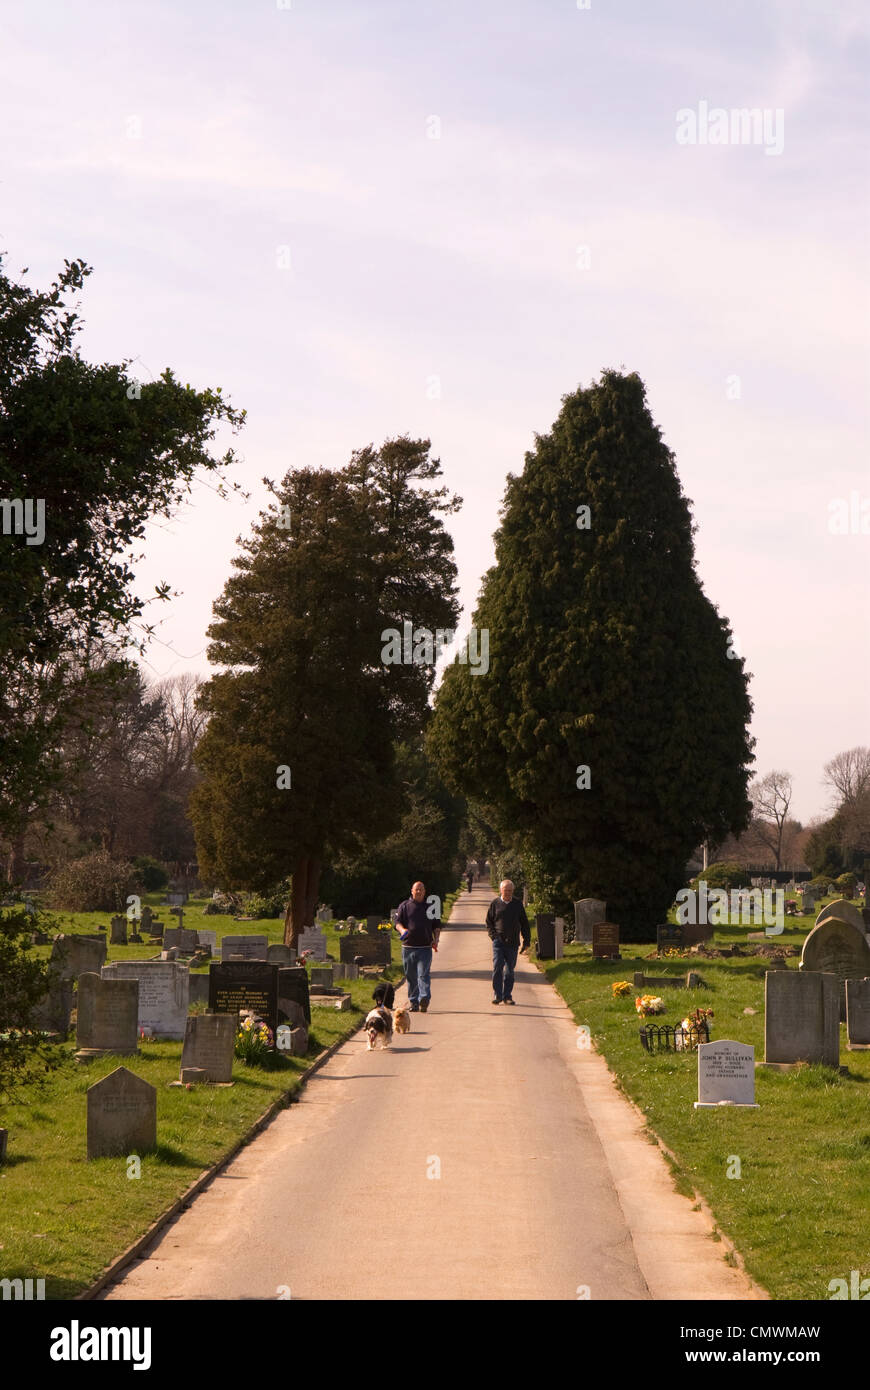 People walking their dogs along pathway at Ann's Hill Cemetery, Gosport, Hampshire, UK. Stock Photo